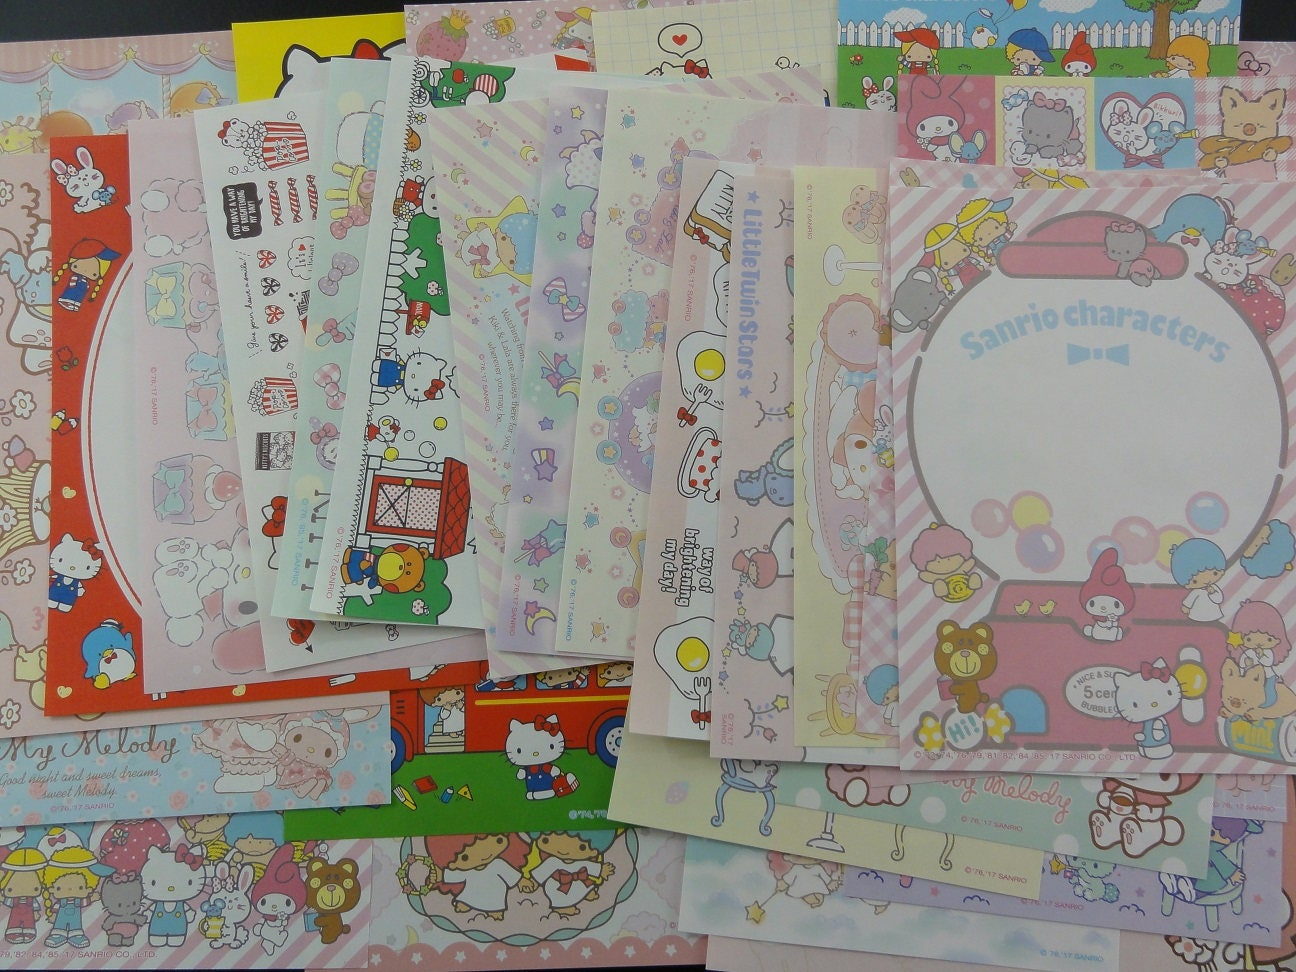 Sanrio Character Diary Sticker Kitty My Melody Tuxedosam Little Tiwn Stars JAPAN